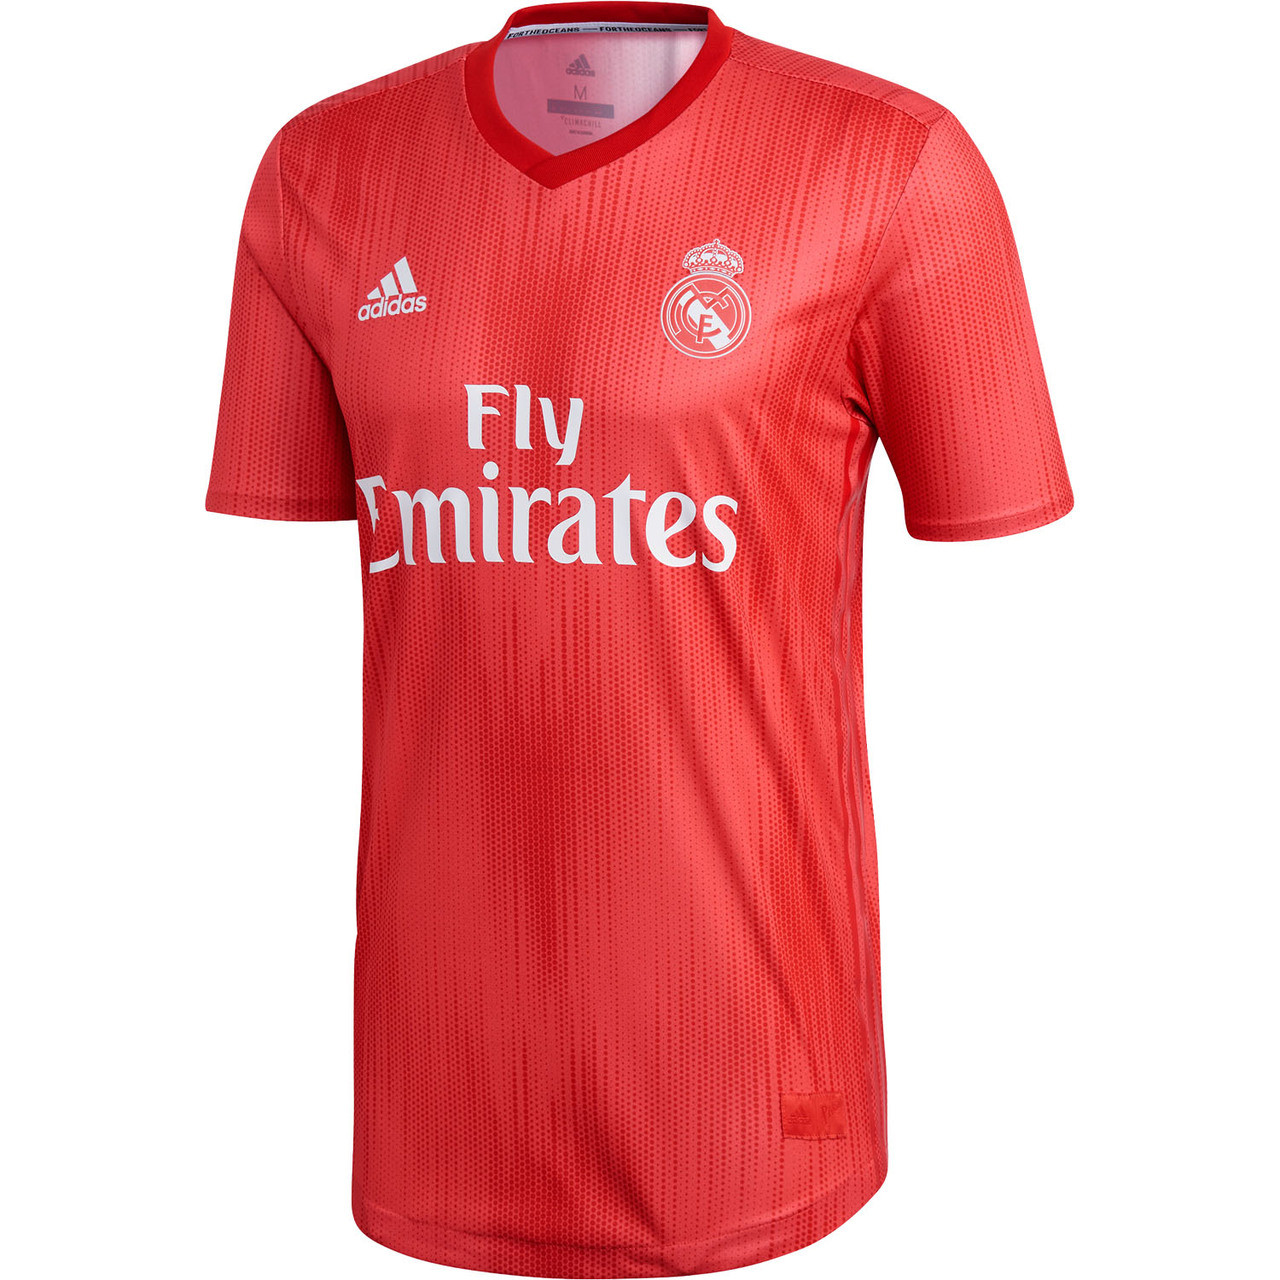 best cheap 6d7fa e80bc ADIDAS REAL MADRID BOYS 2019 AWAY RED JERSEY